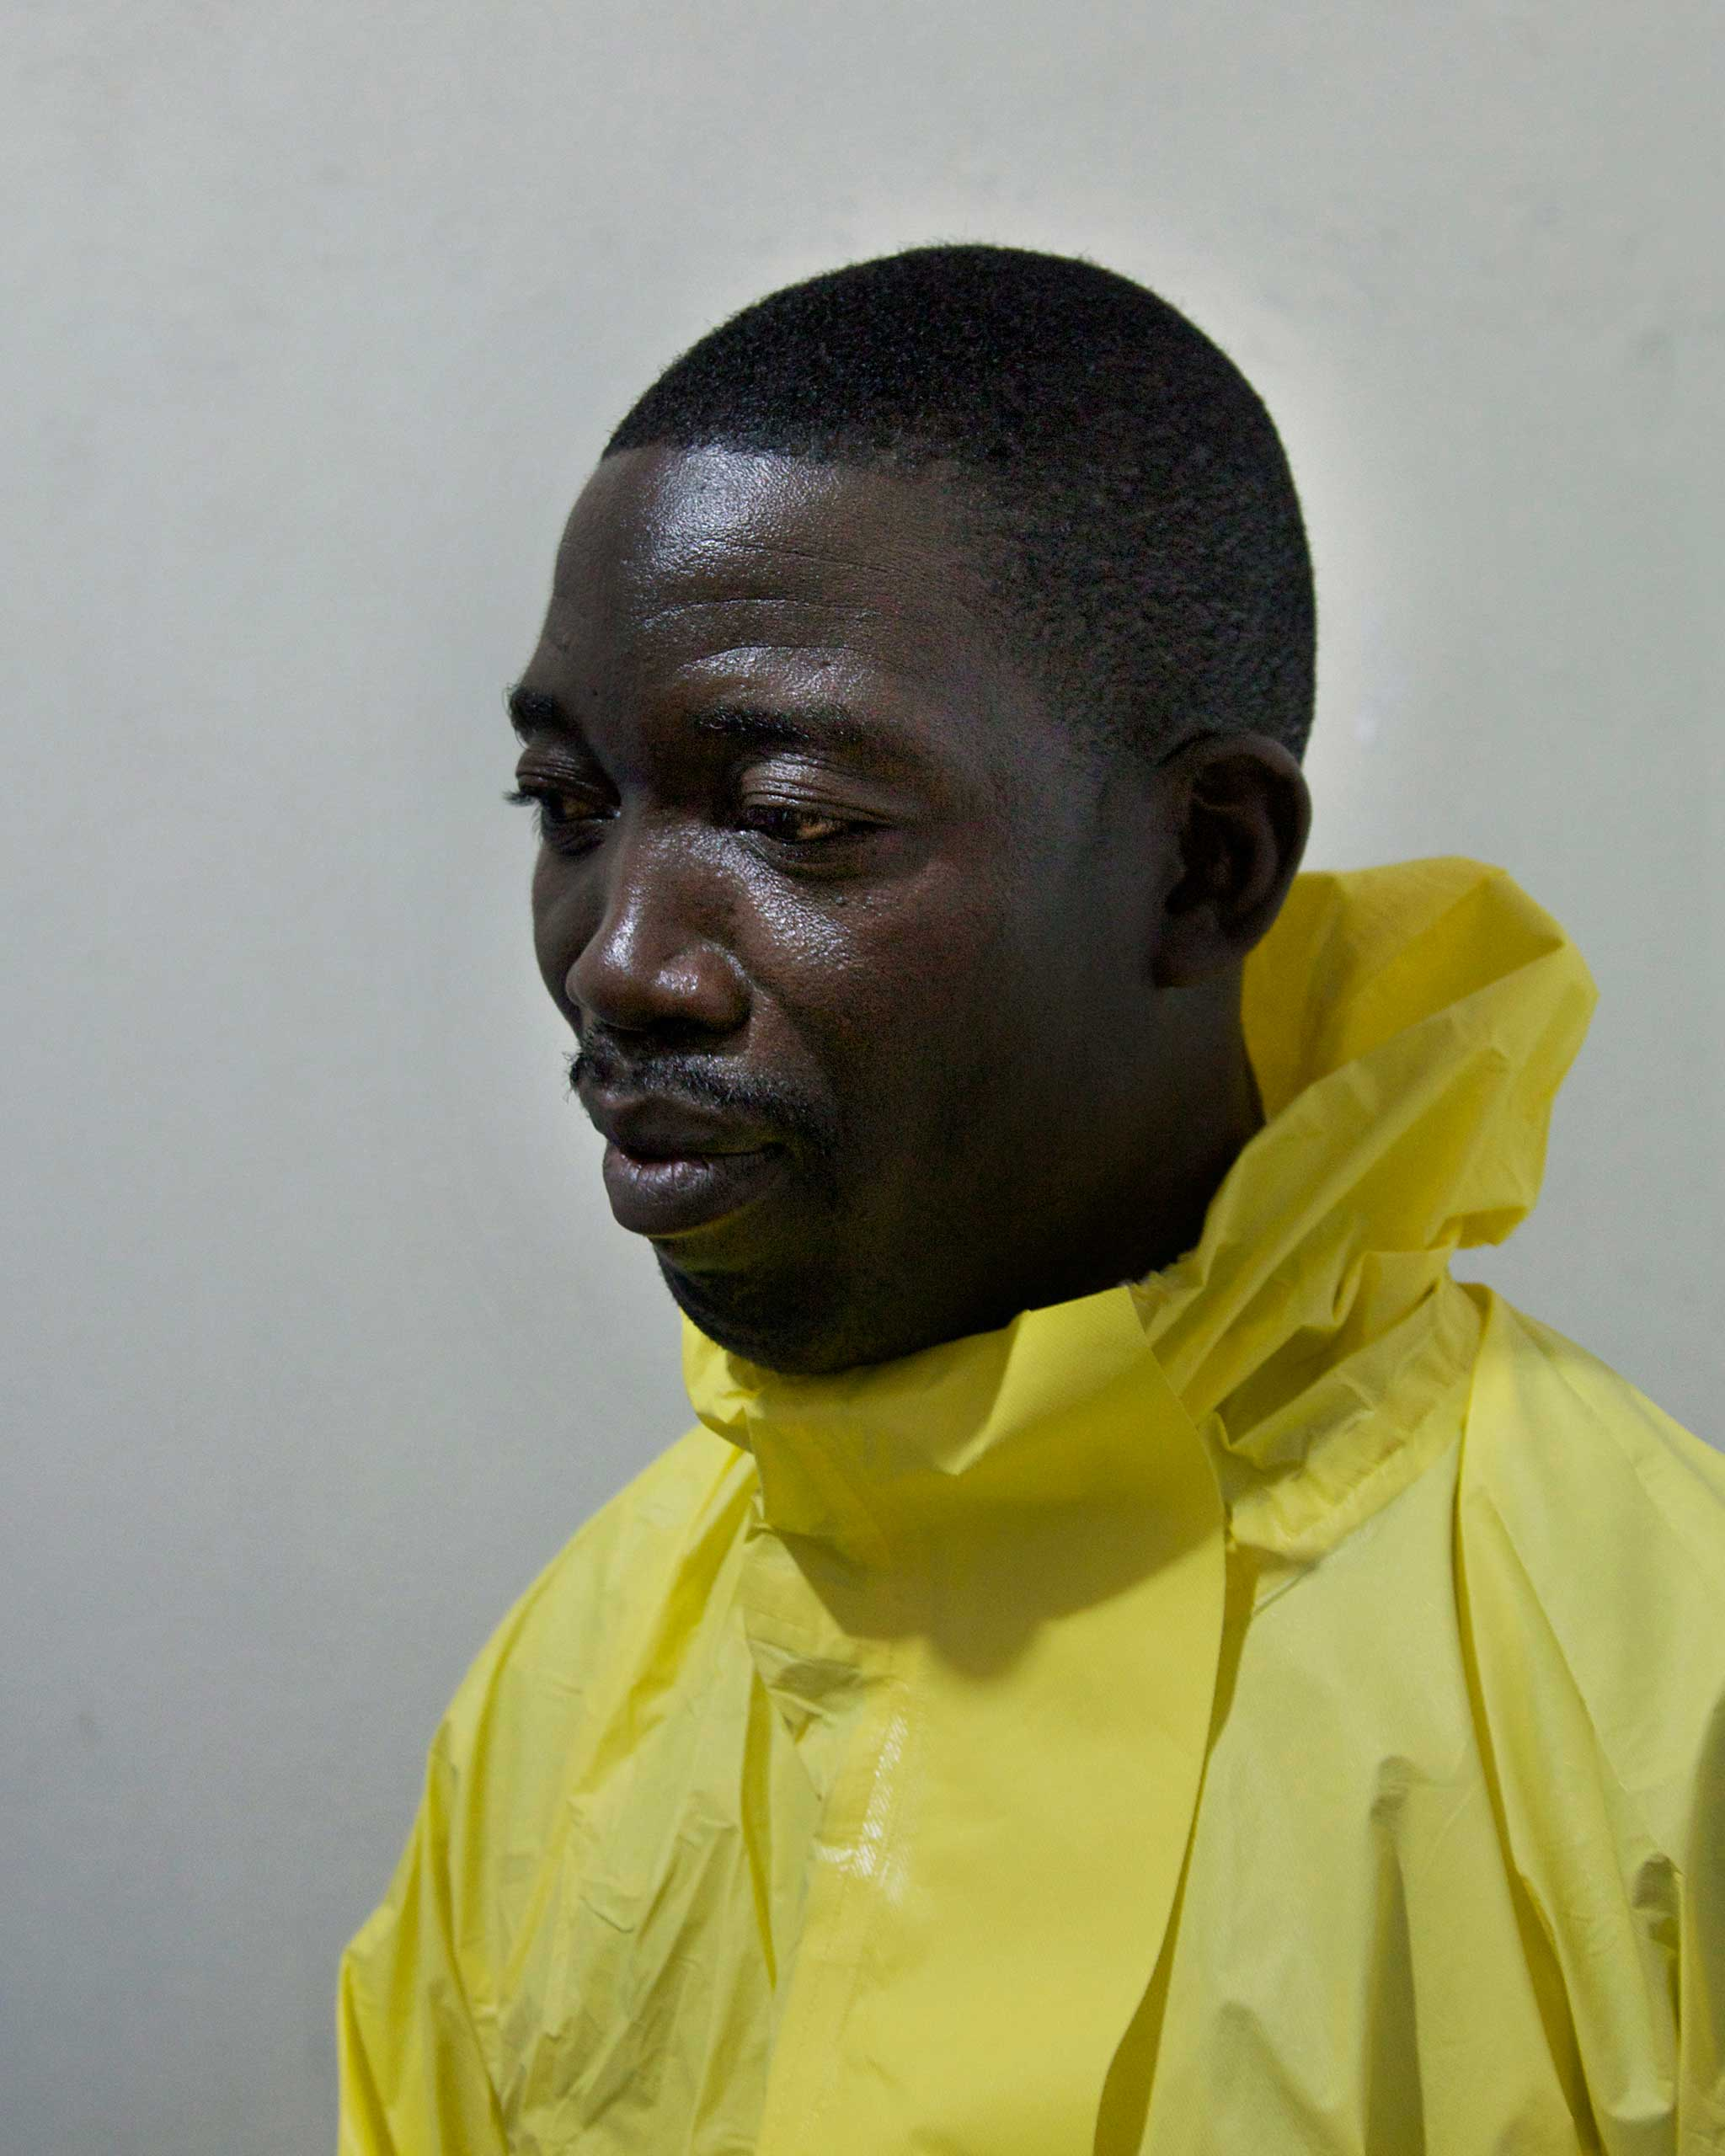 Dr. Jerry Brown, 46, Medical Director of ELWA Hospital in Monrovia, Liberia. Nov. 27, 2014